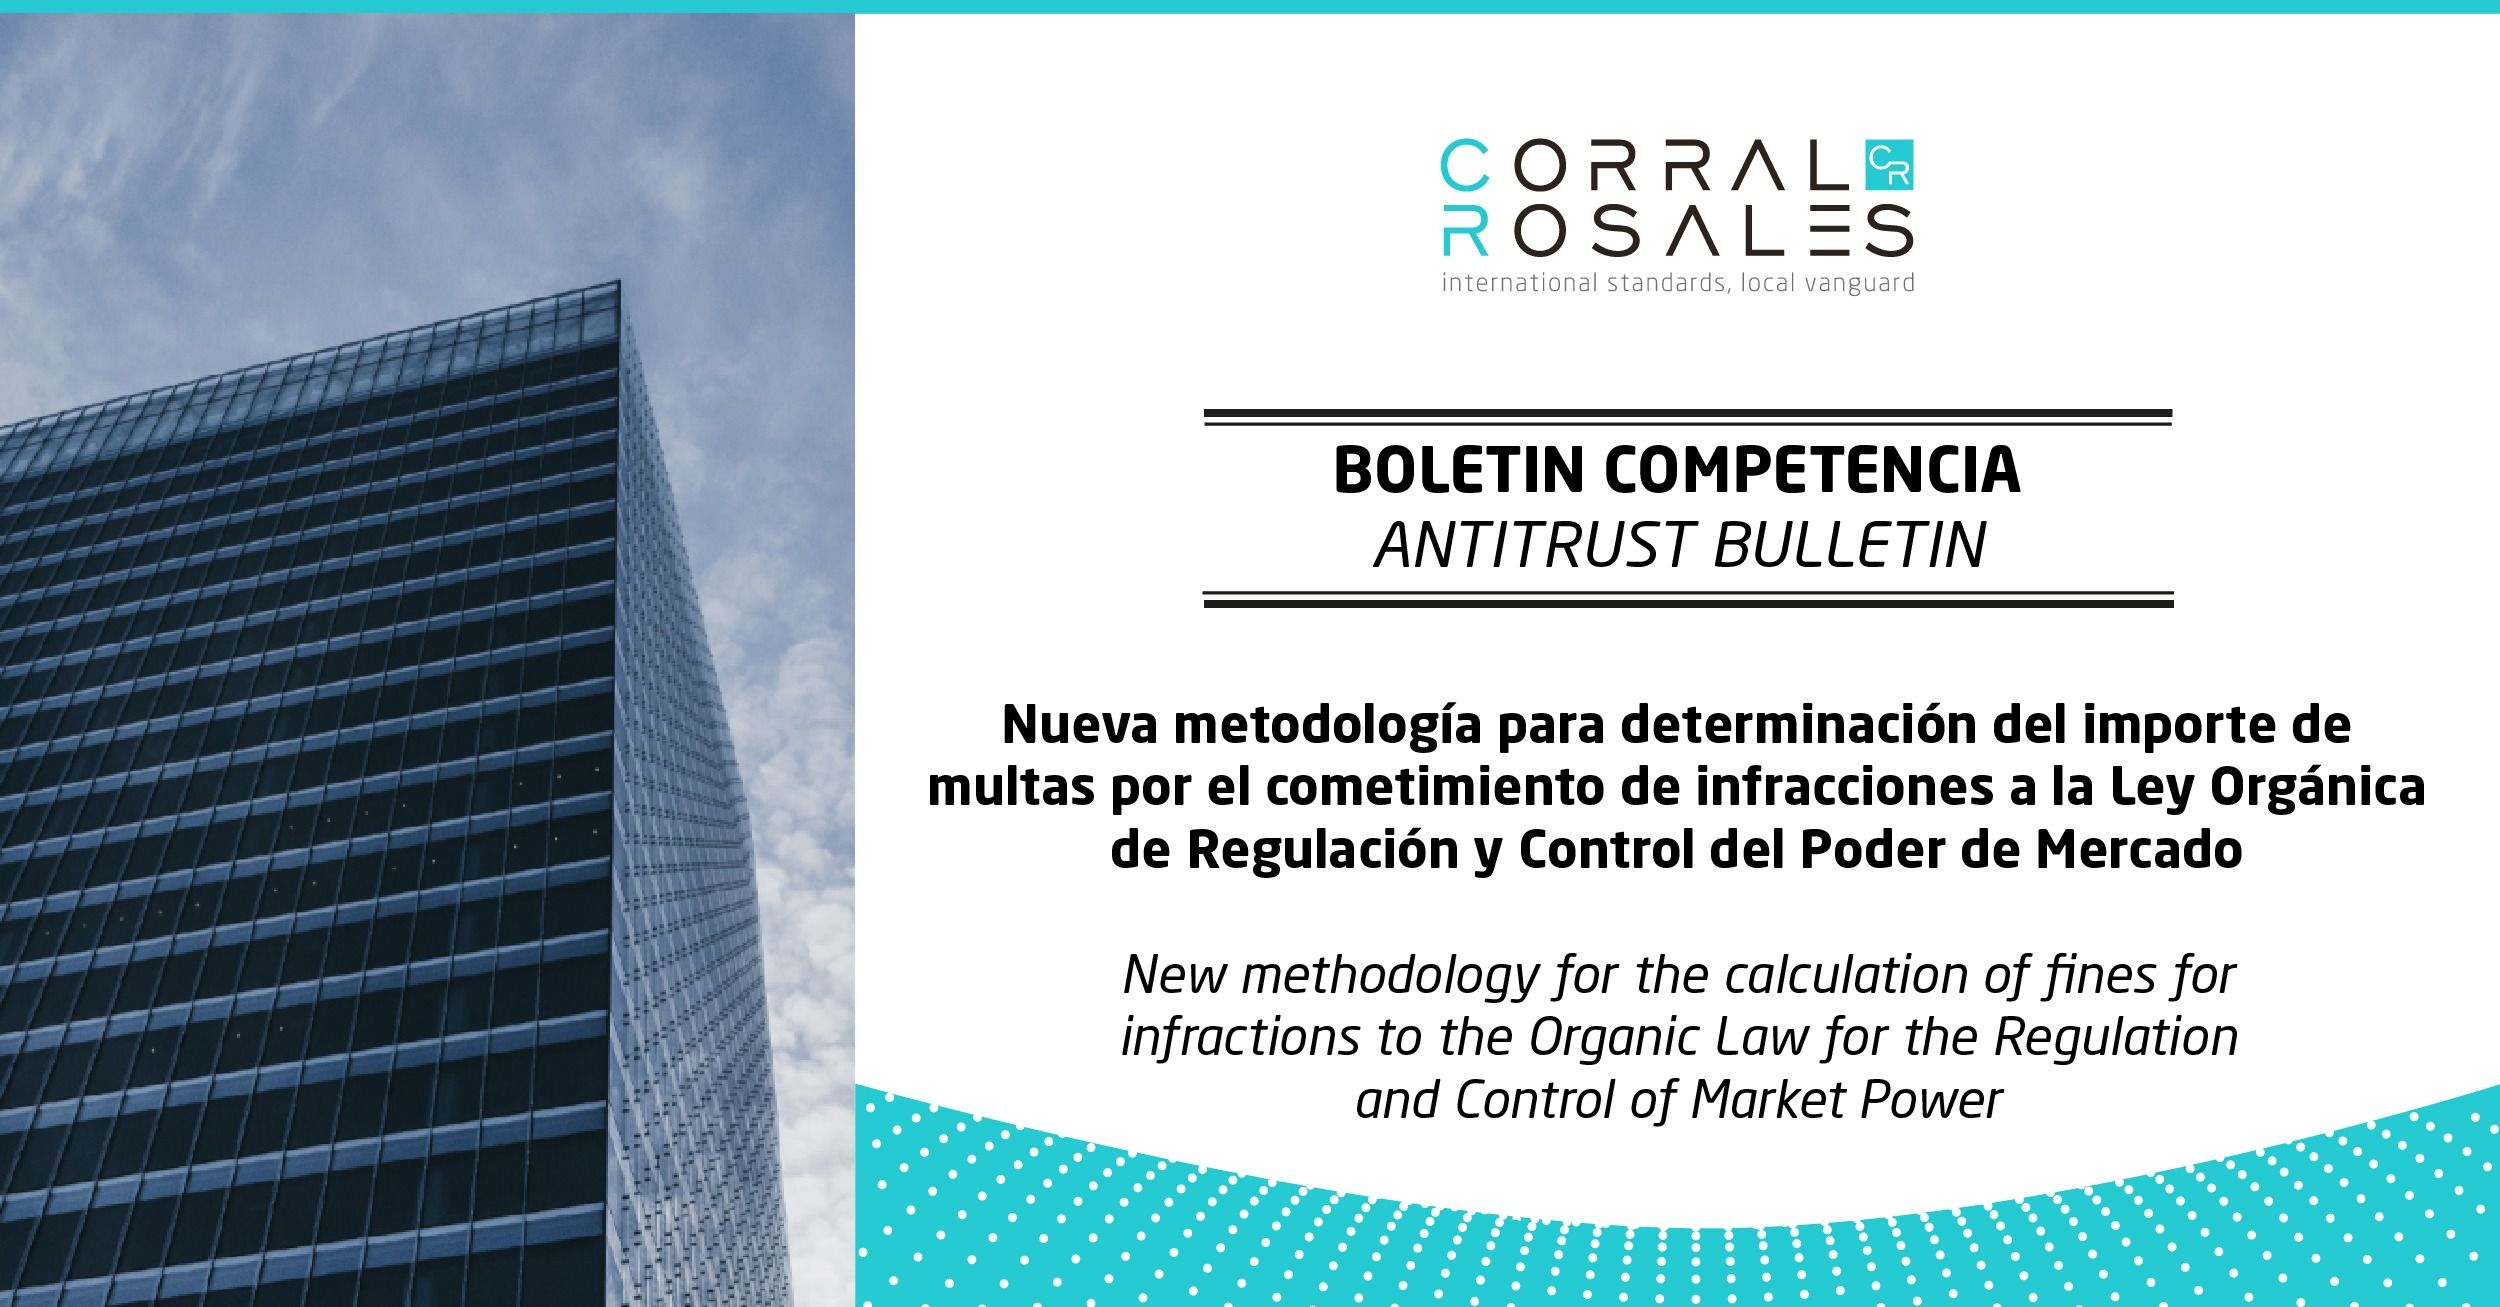 New methodology for the calculation of fines for infractions to the Organic Law for the Regulation and Control of Market Power - CorralRosales - Lawyers Ecuador